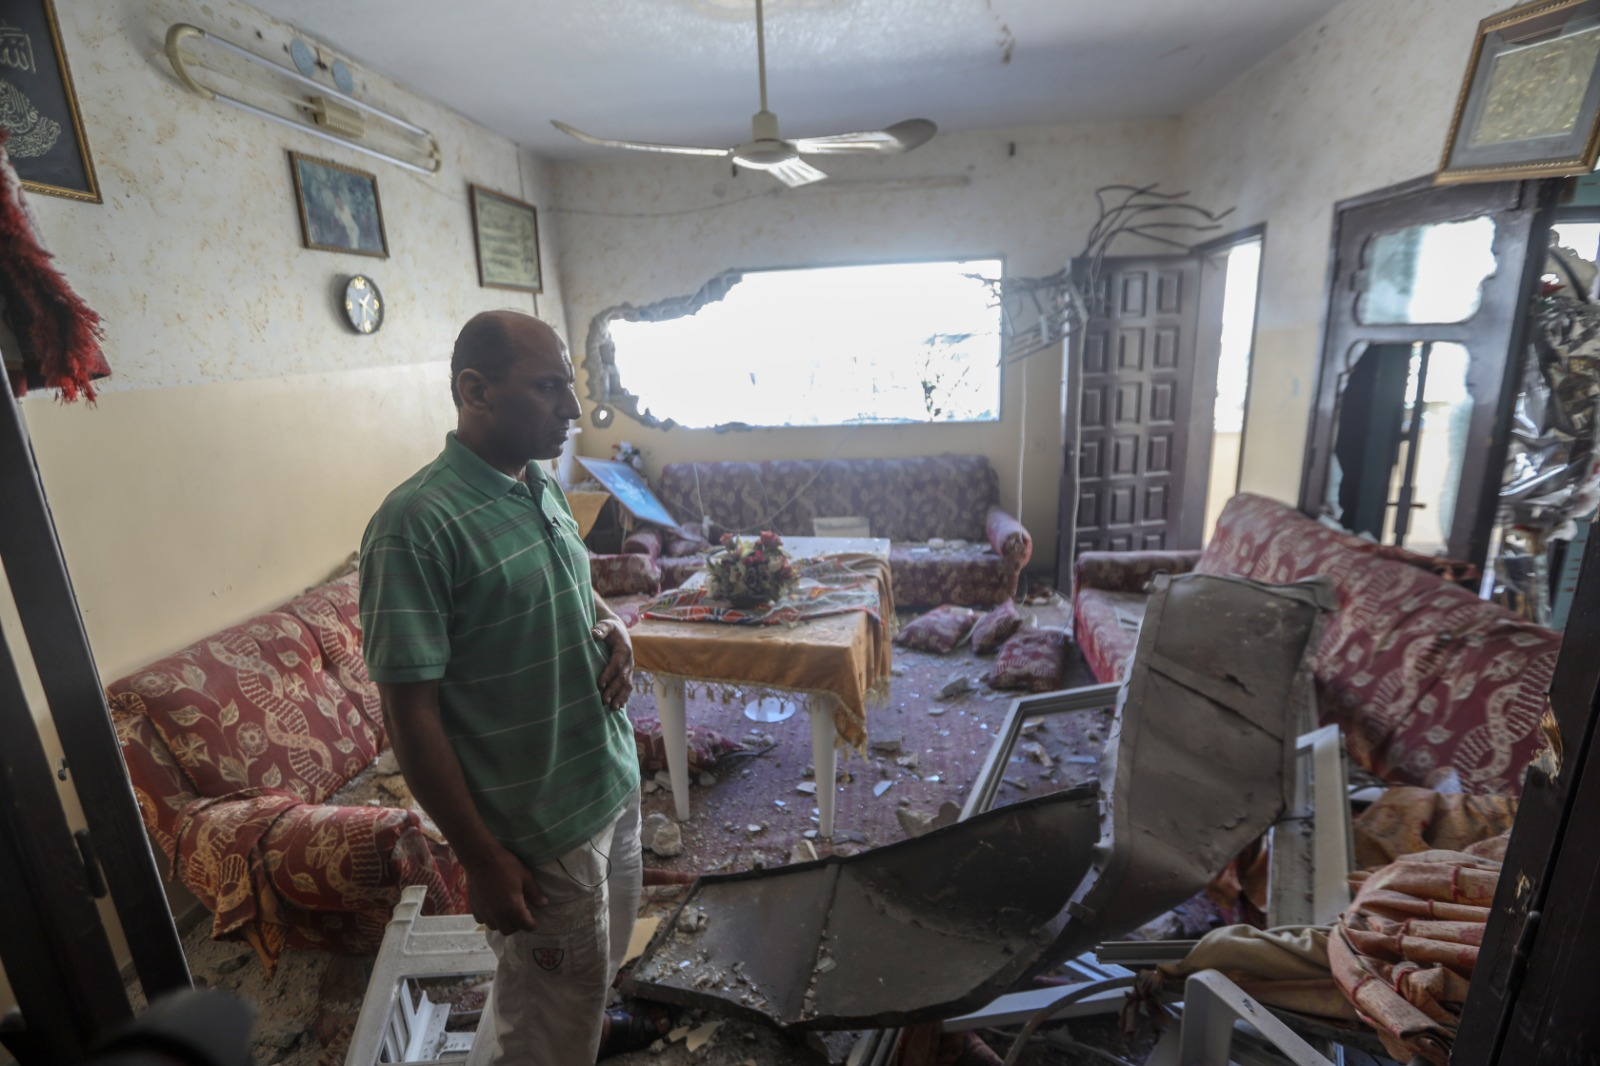 A Palestinian man seen in his home after it was destroyed by an Israeli airstrike, May 15, 2021. (Mohammed Zaanoun/Activestills)